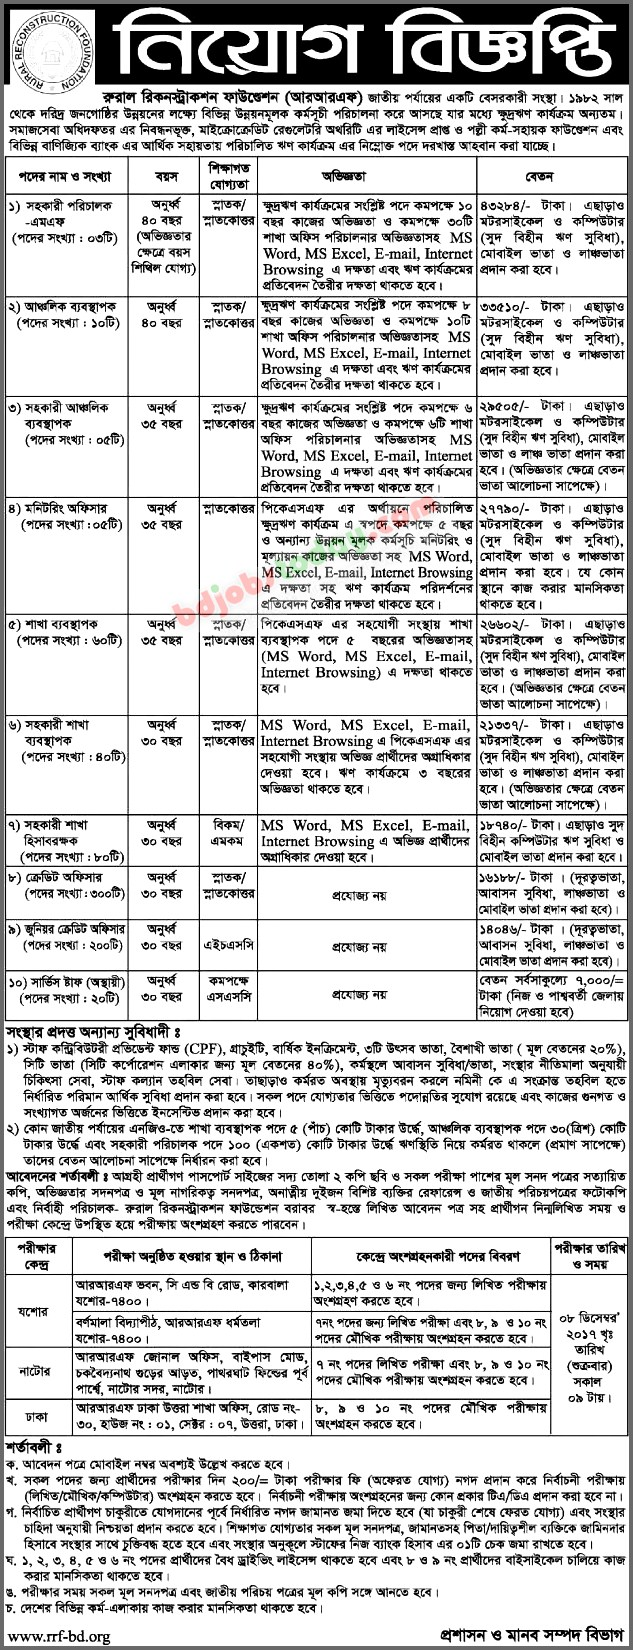 Rural Reconstruction Foundation (RRF) jobs